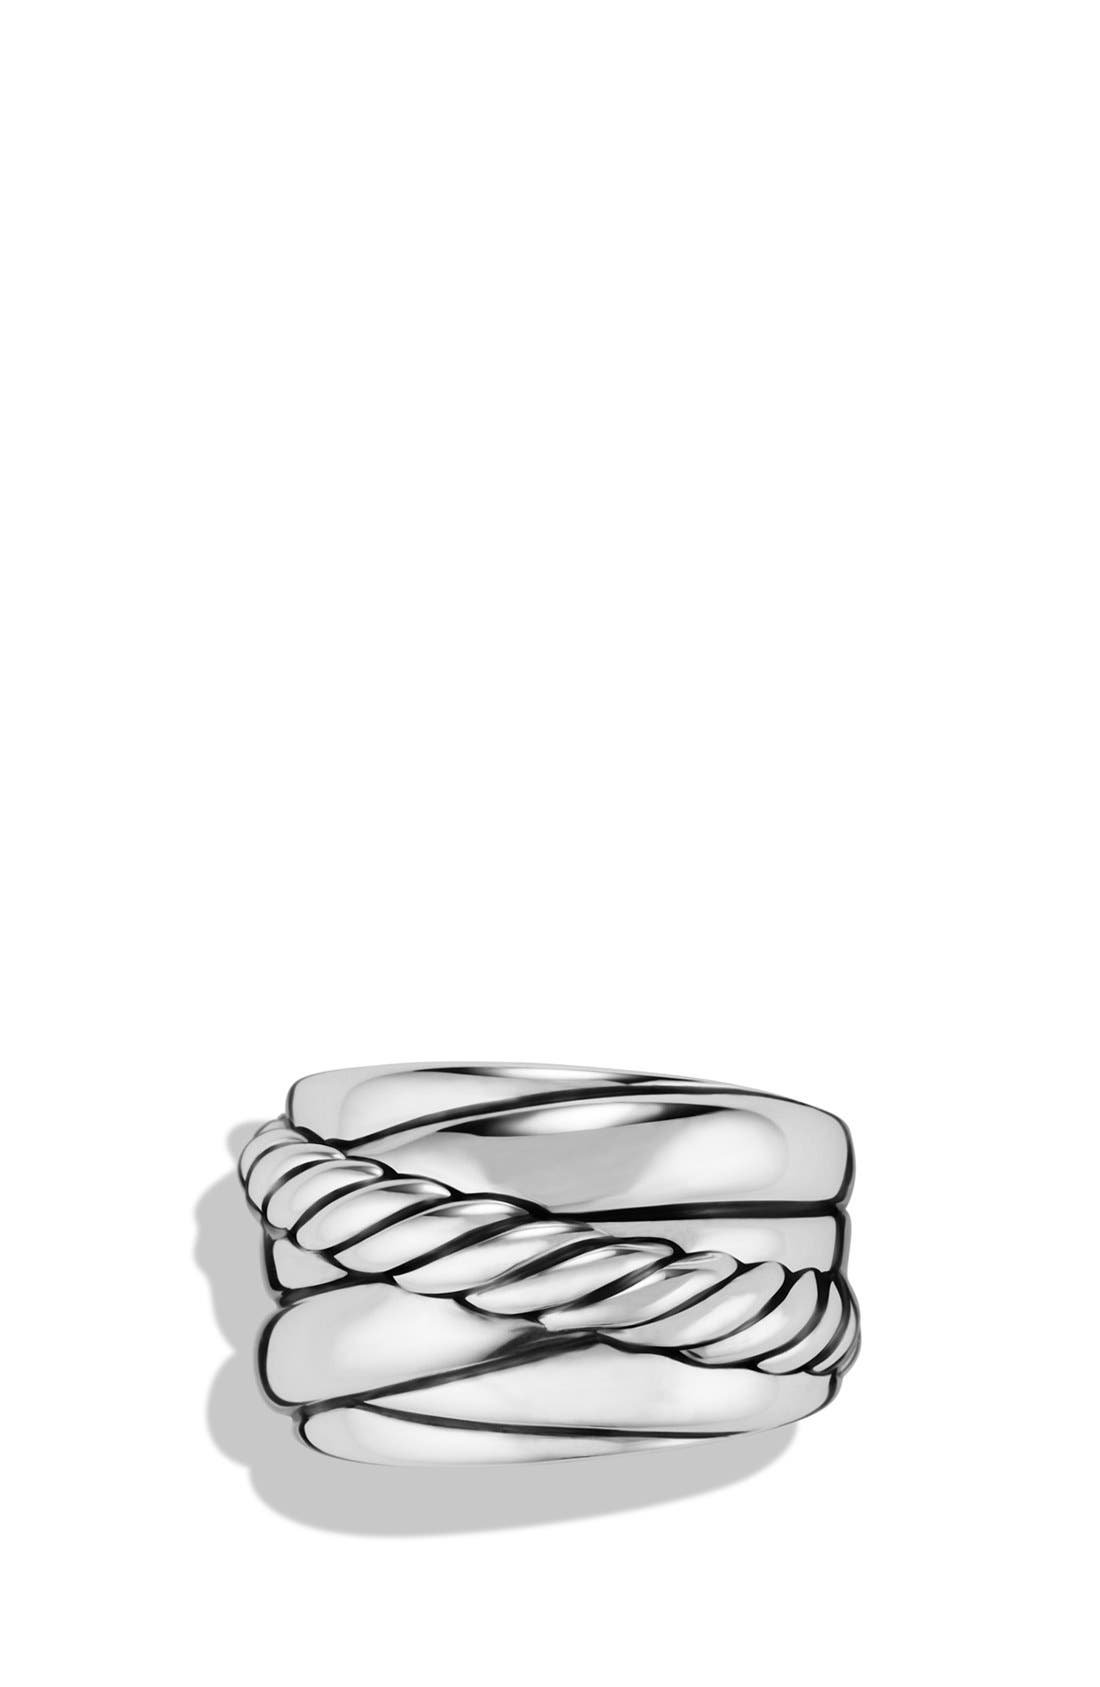 Alternate Image 3  - David Yurman 'Crossover' Wide Ring